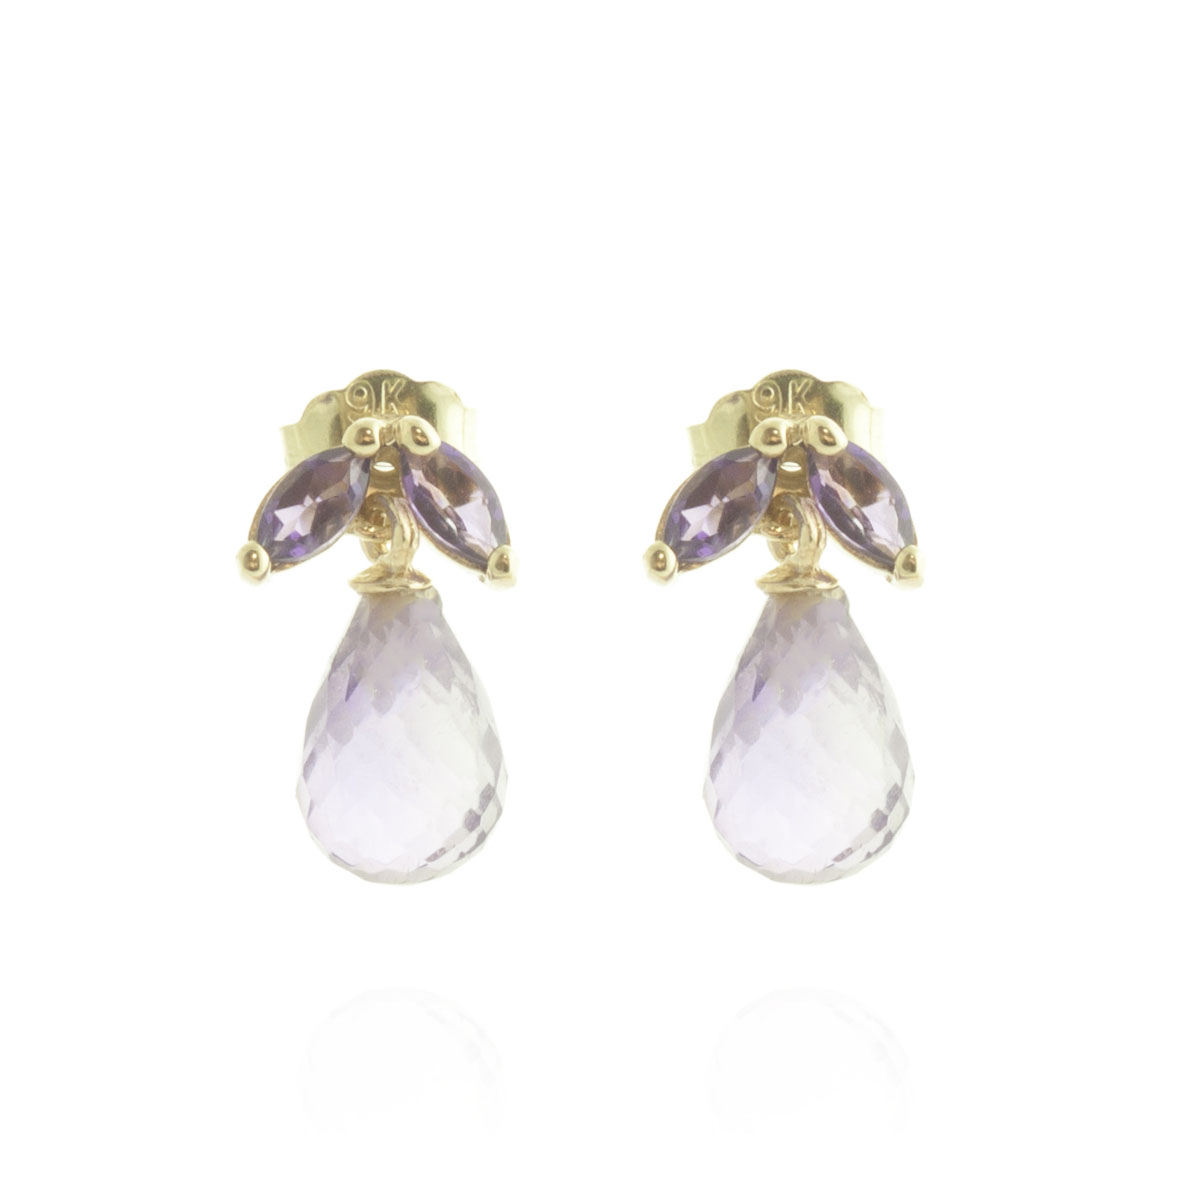 Amethyst Snowdrop Stud Earrings 3.4 ctw in 9ct Gold